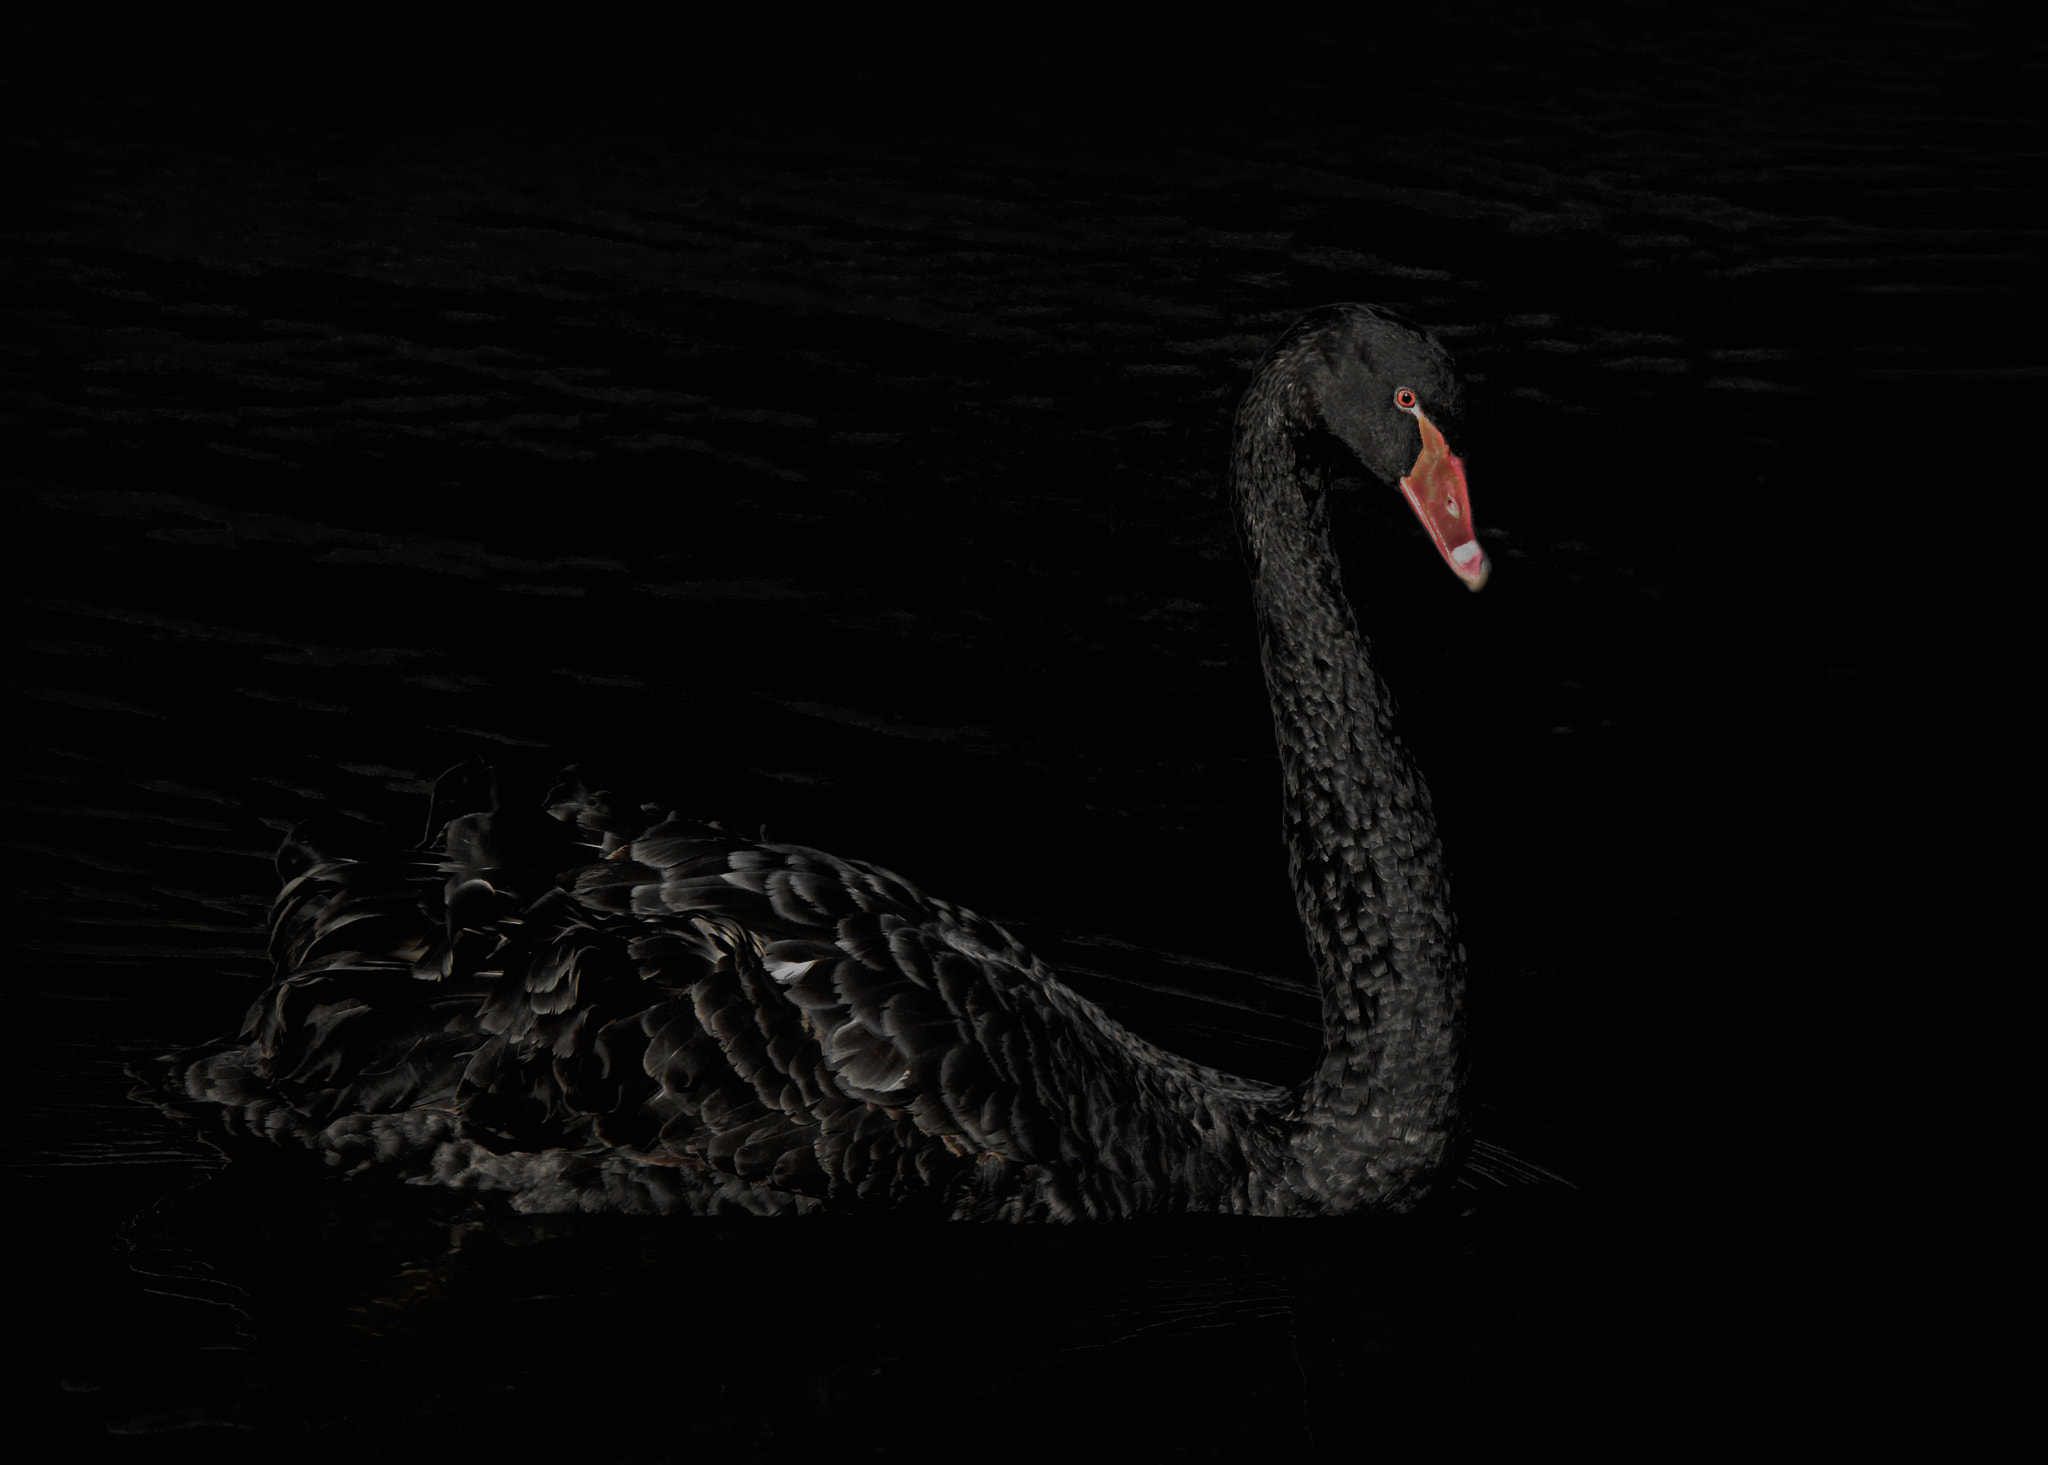 Photograph Low Key Swan by Steven Kersting on 500px